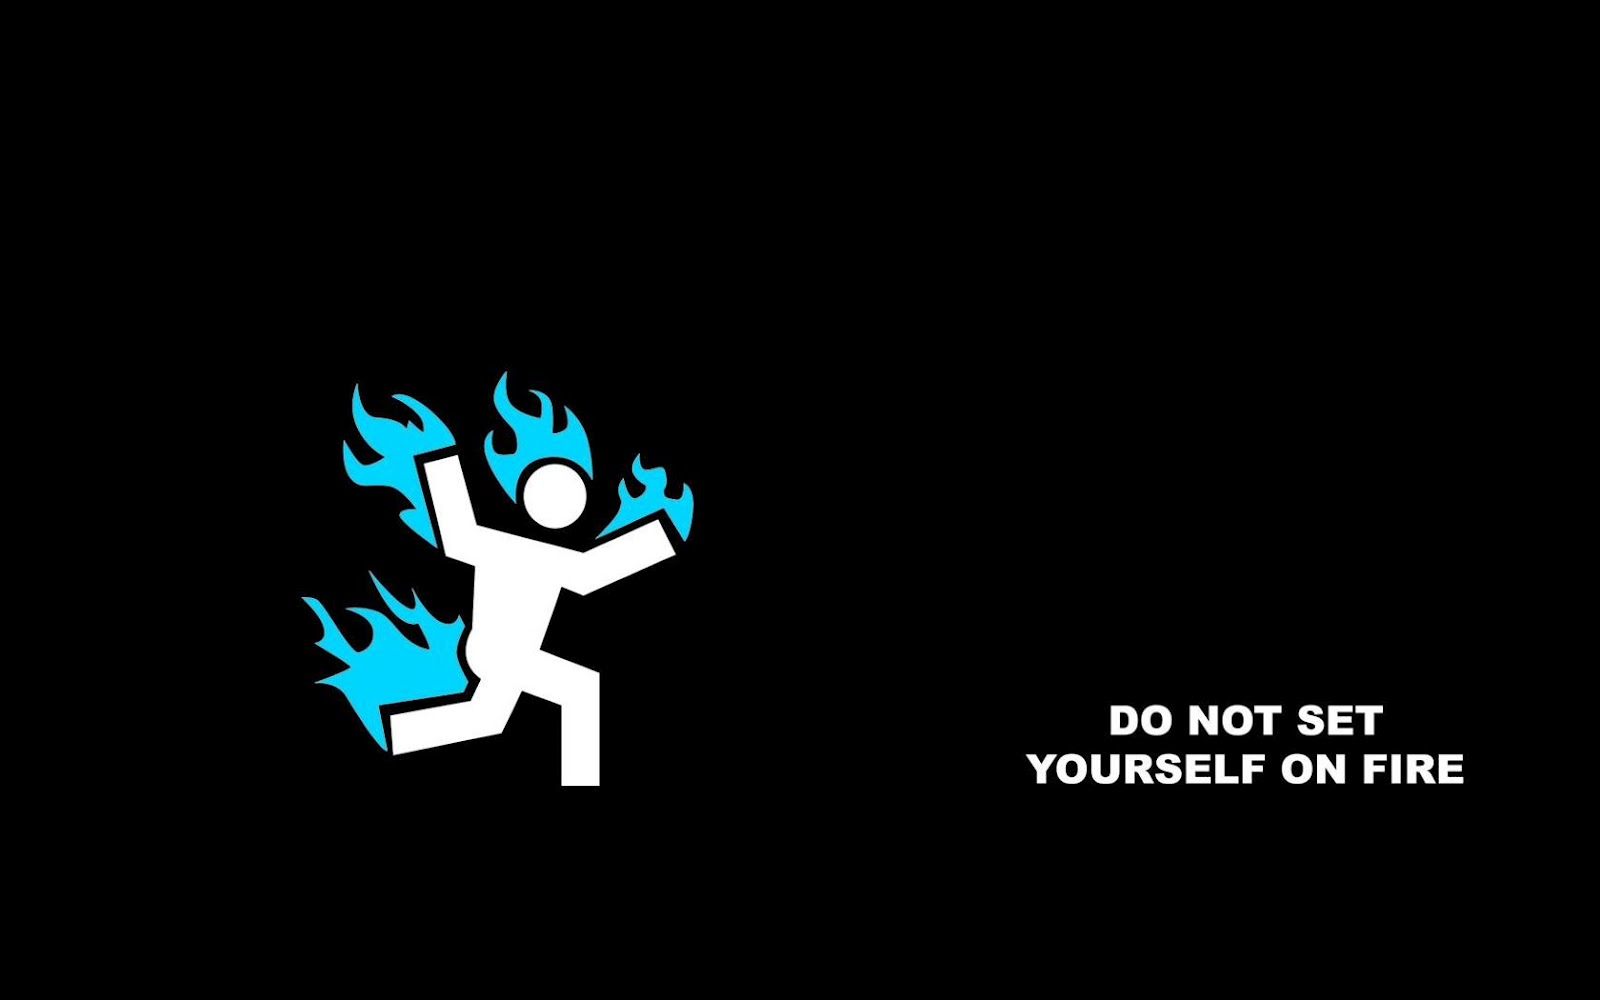 Very Funny HD Backgrounds funny backgrounds backgrounds for desktop 1600x1000